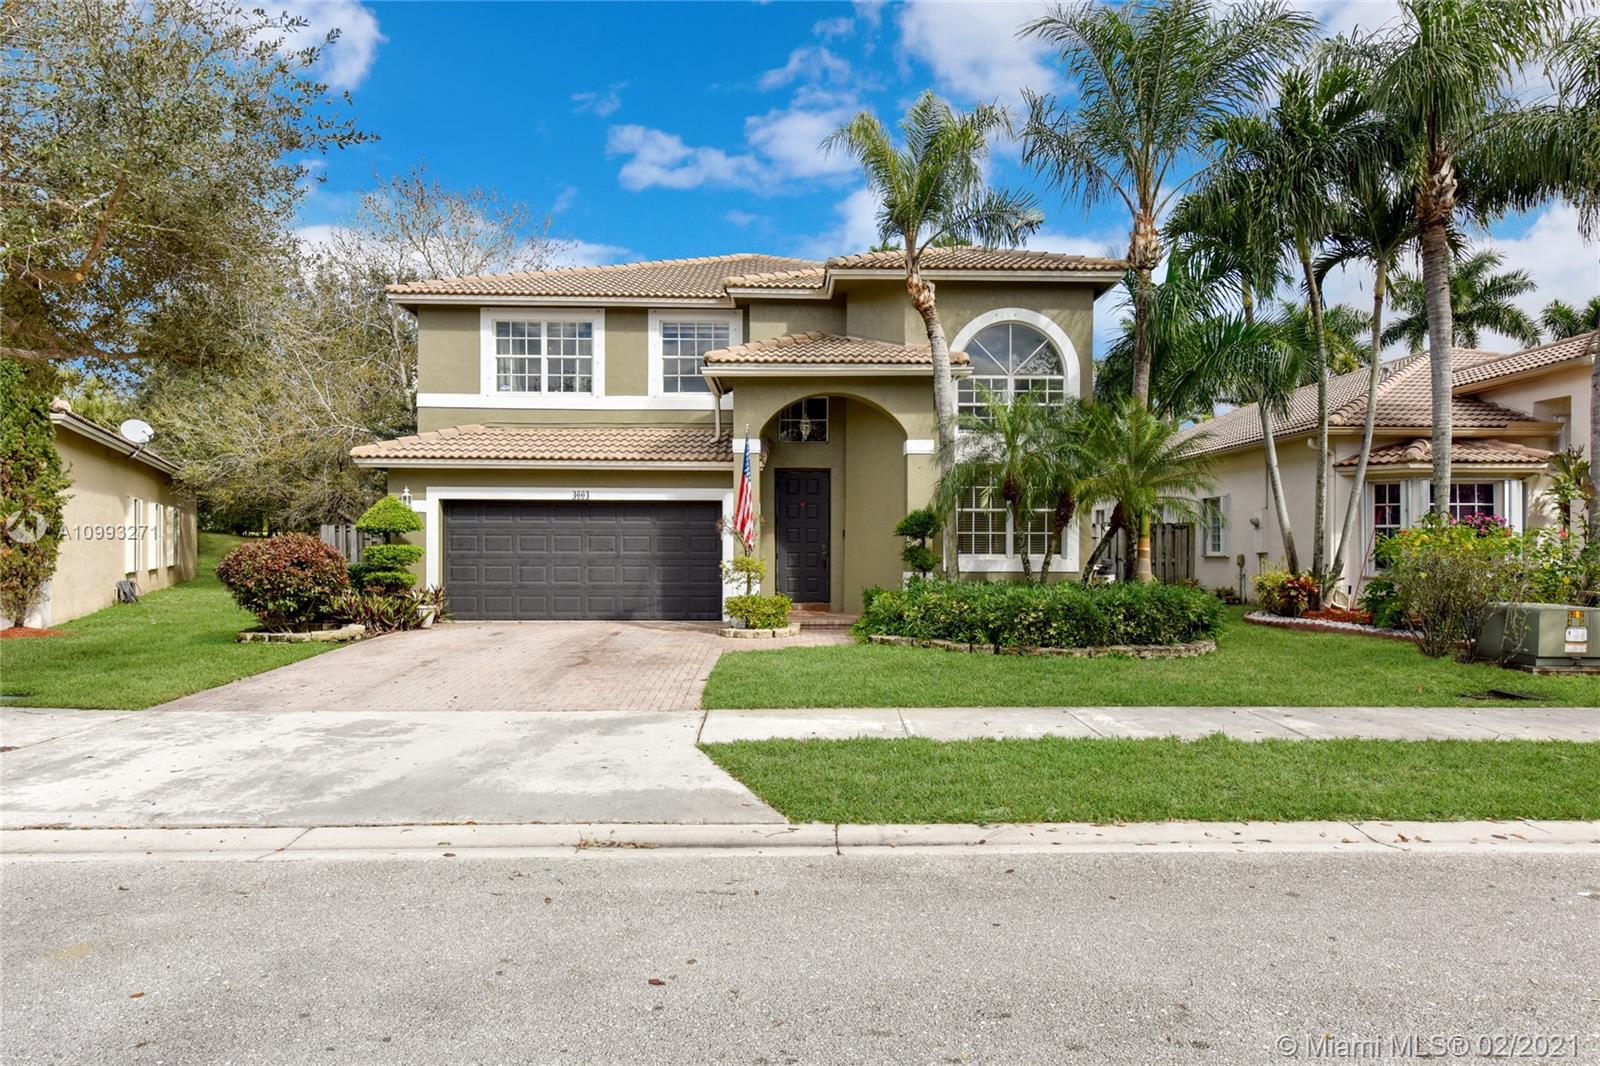 Beautiful 4 bedroom, 3 bathroom house ready for you to call home! Upon entry you have grand open living space, take a walk into the kitchen where you can enjoy entertaining while cooking, Florida room, spacious bedroom, and full bathroom on the first floor. Upstairs you have great den perfect for a play place for kids or office, 3 spacious bedrooms including the grand master suite where you have a walk-in closet and large bathroom with separate tub and shower. Awesome backyard with screened patio, pool and spa. Perfect for the amazing Florida weather we have all year around! Monthly HOA covers ADP home security, basic cable, high speed internet and more! Located nearby Weston Commons, Home Depot and I75 for an easy commute anywhere you need to go!